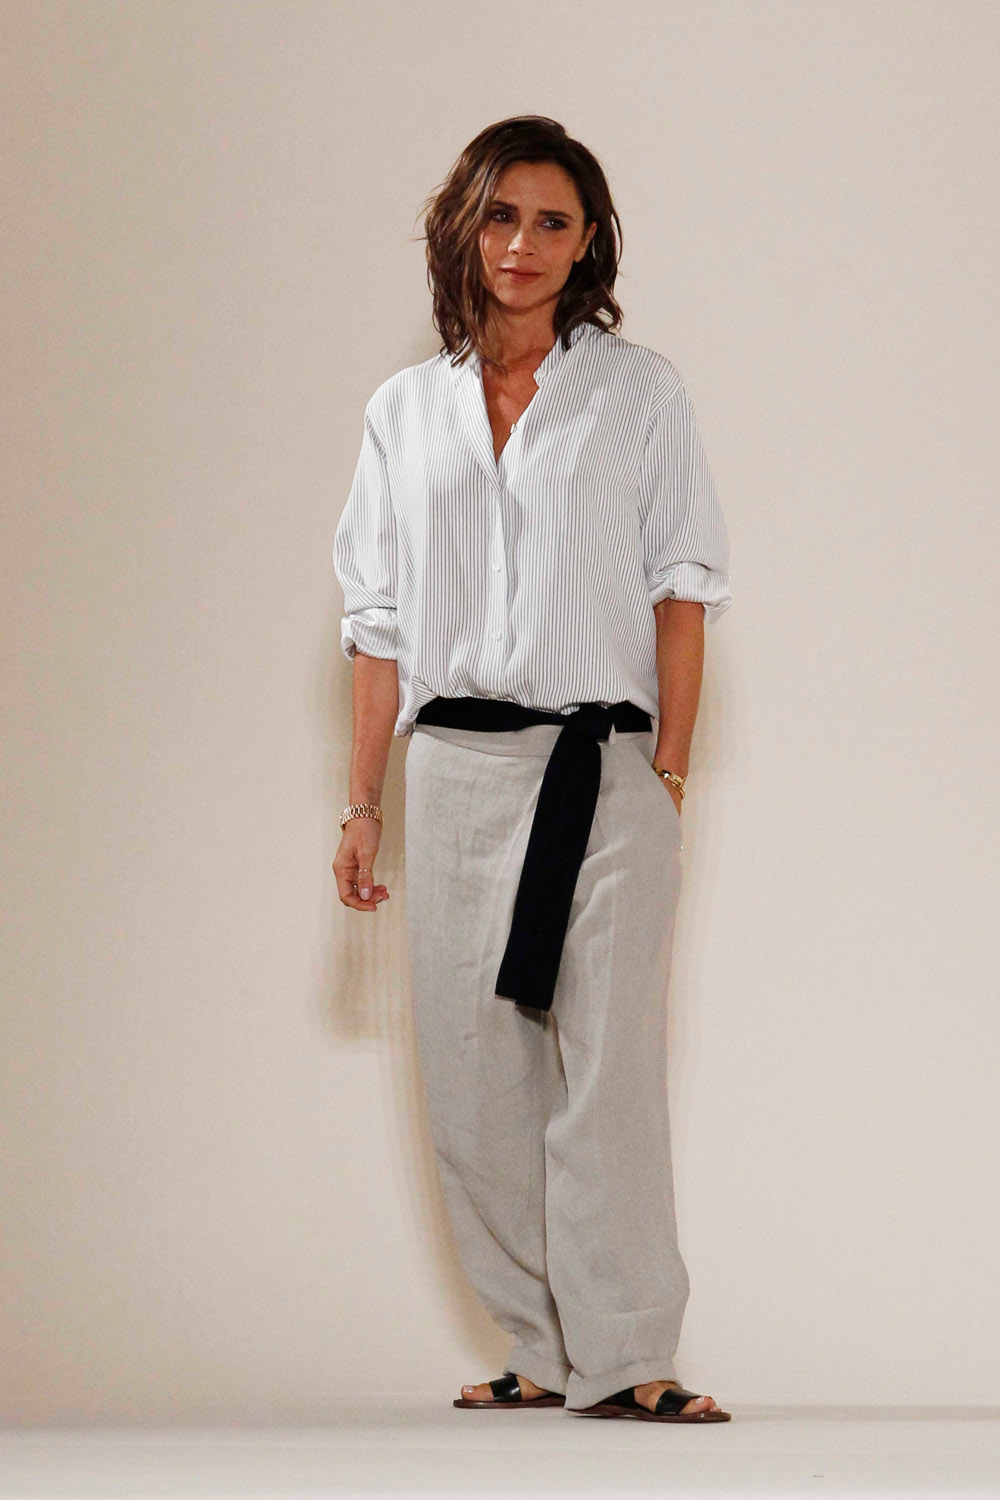 VICTORIA BECKHAM fashion show New York Fashion Week Ready to Wear, Spring Summer 16/17 on September 11, 2016, Image: 299584616, License: Rights-managed, Restrictions: , Model Release: no, Credit line: Profimedia, Capital pictures